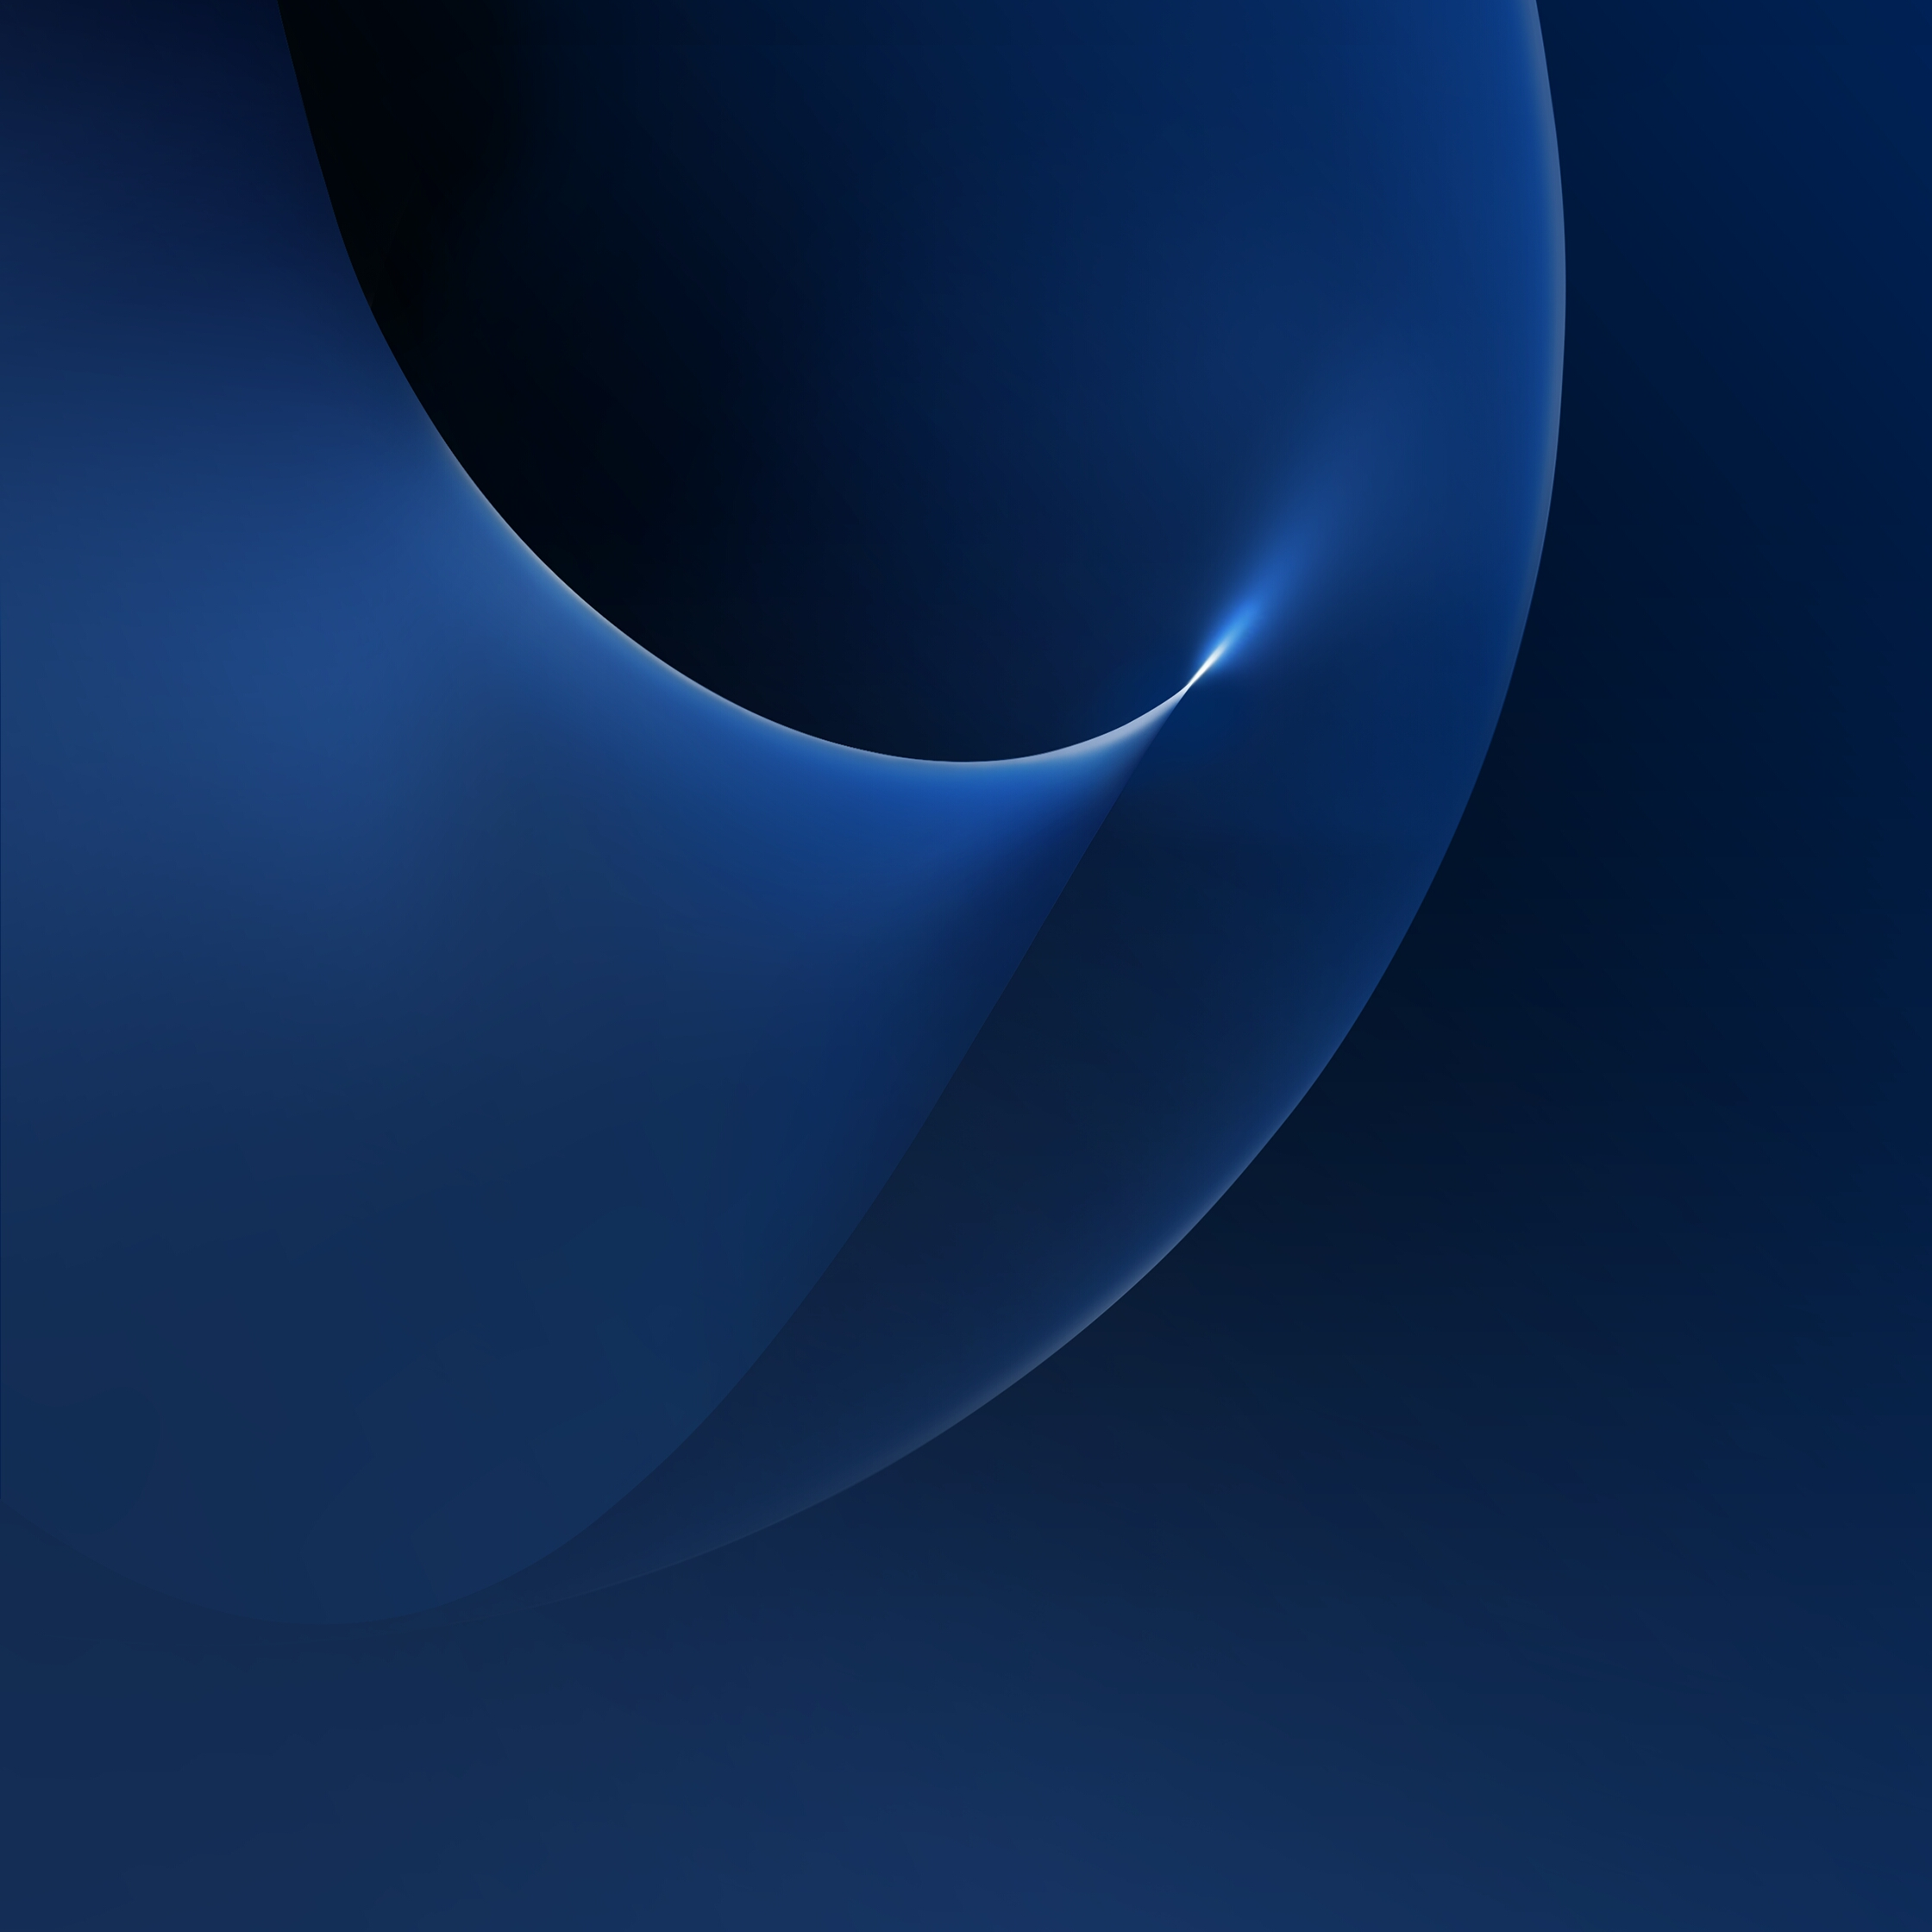 Descarga gratis los wallpapers del Galaxy S7   Wayerless 2240x2240